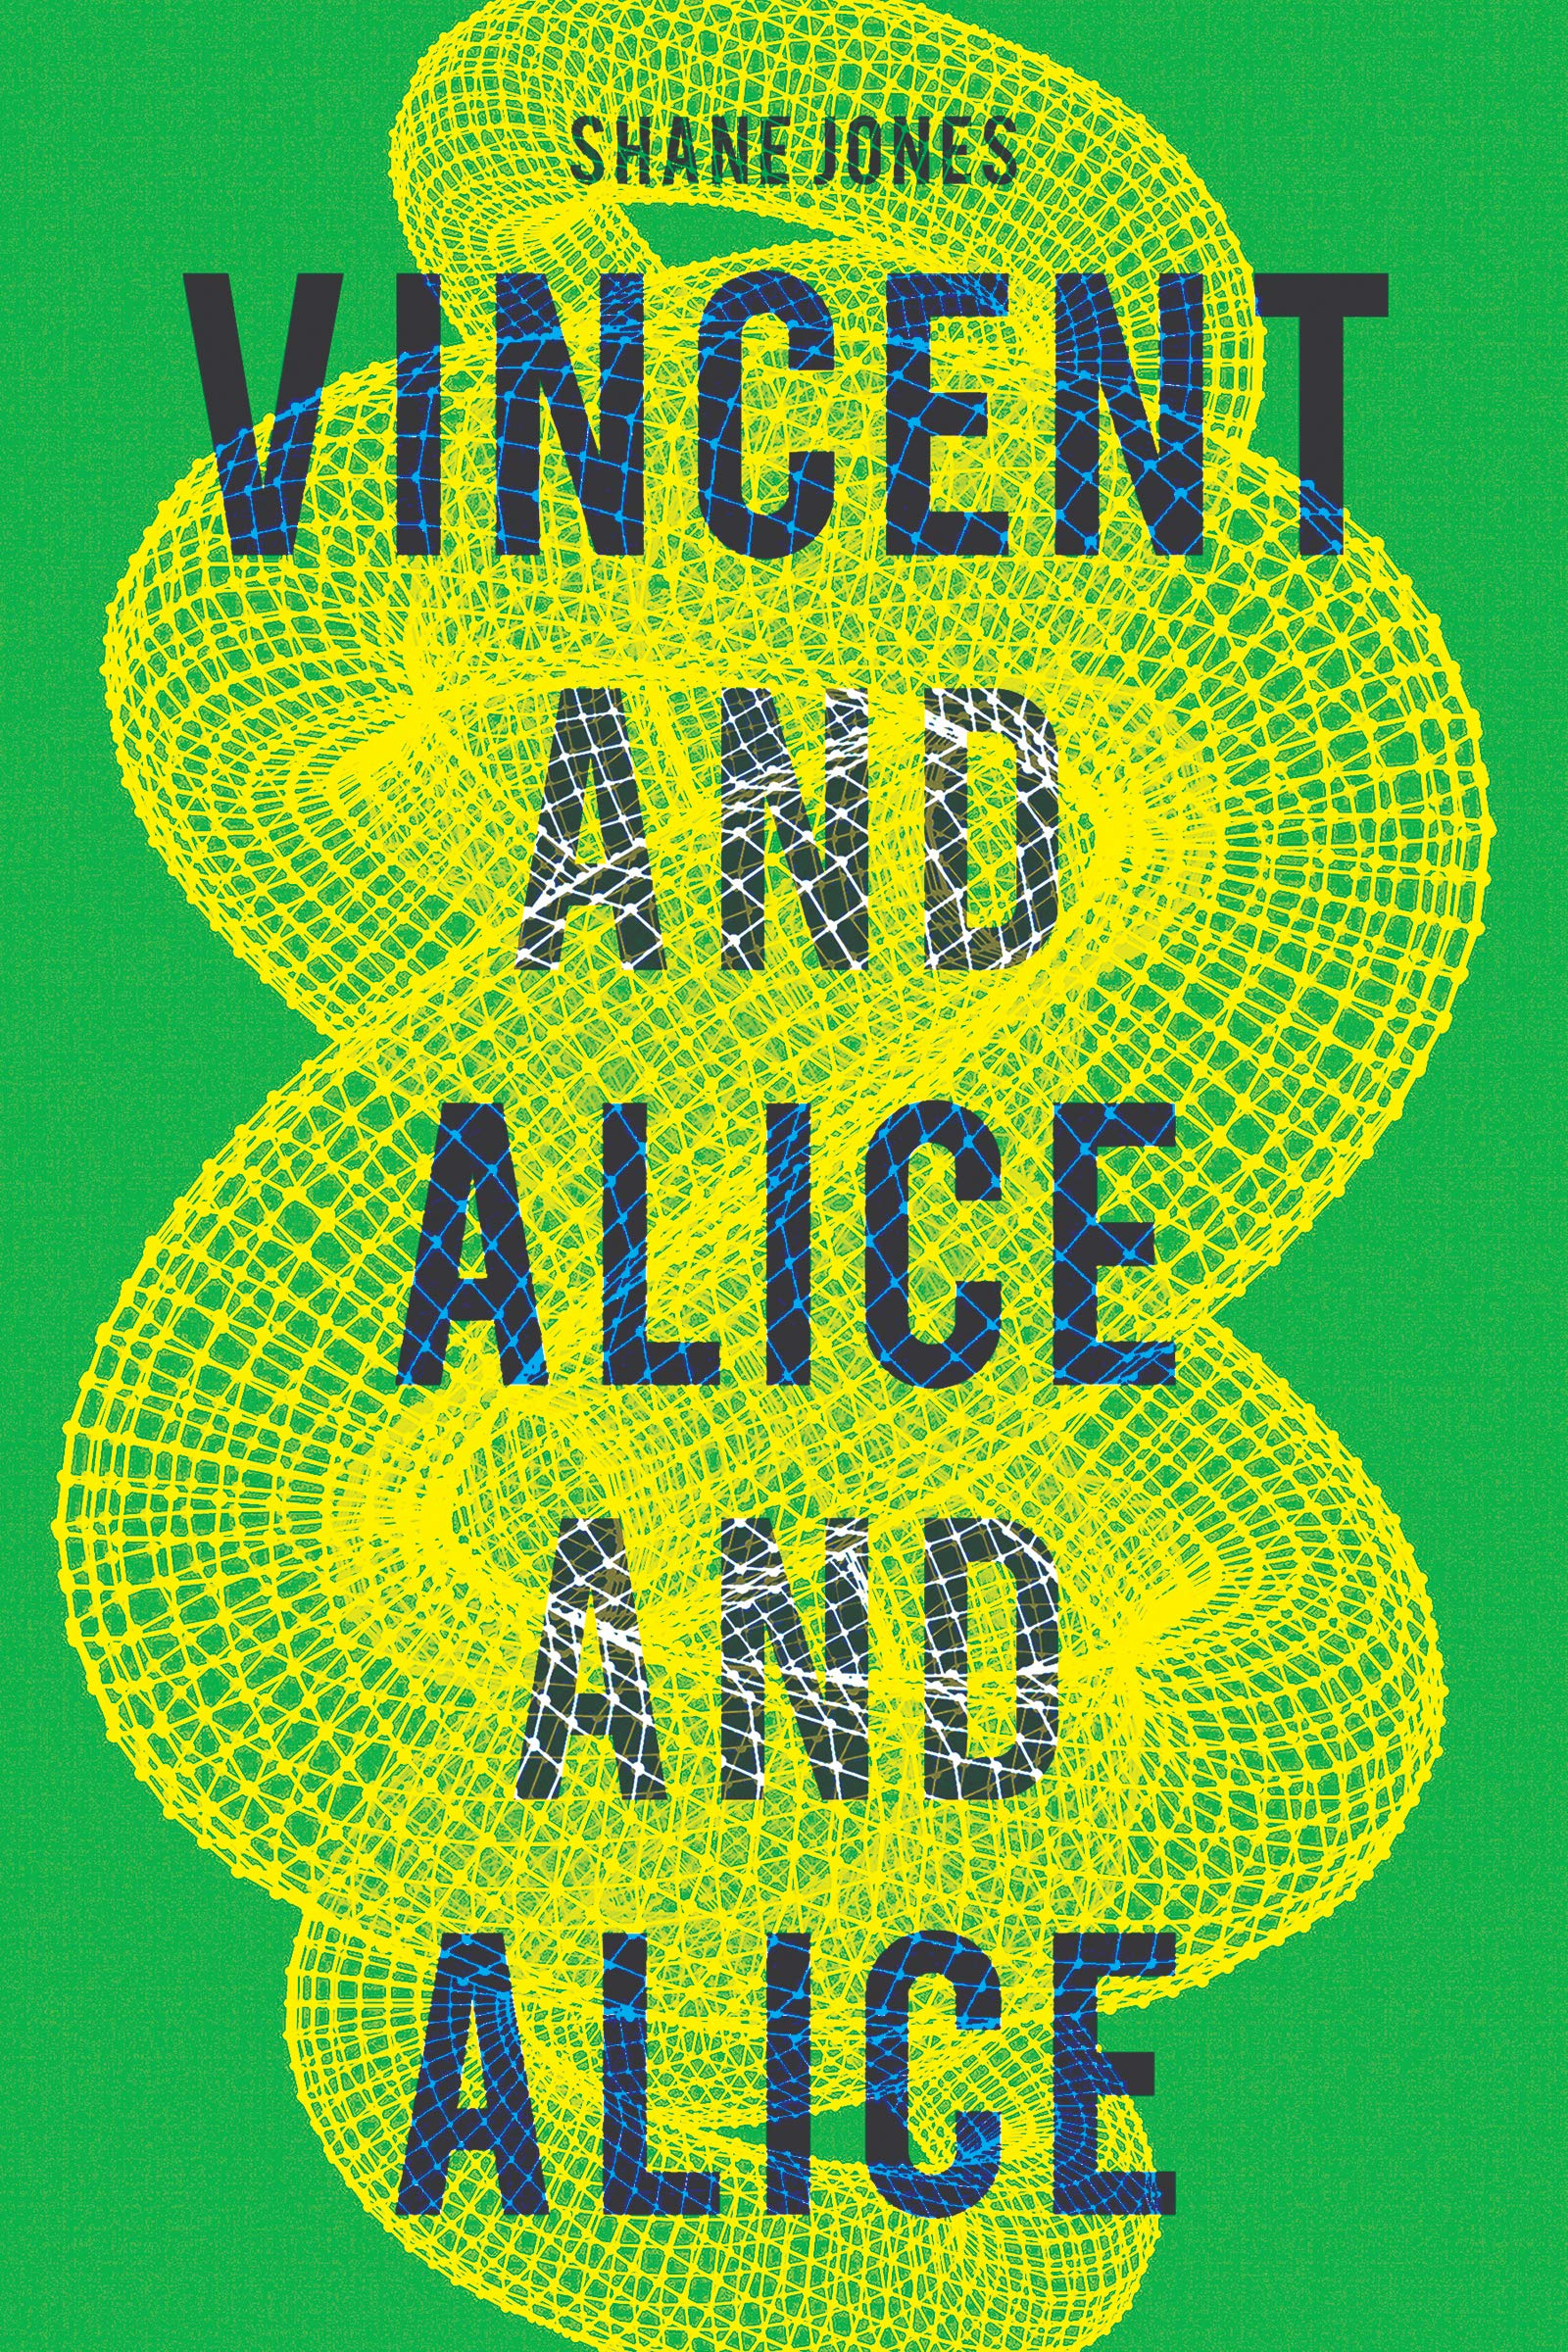 'Vincent and Alice and Alice' by Shane Jones